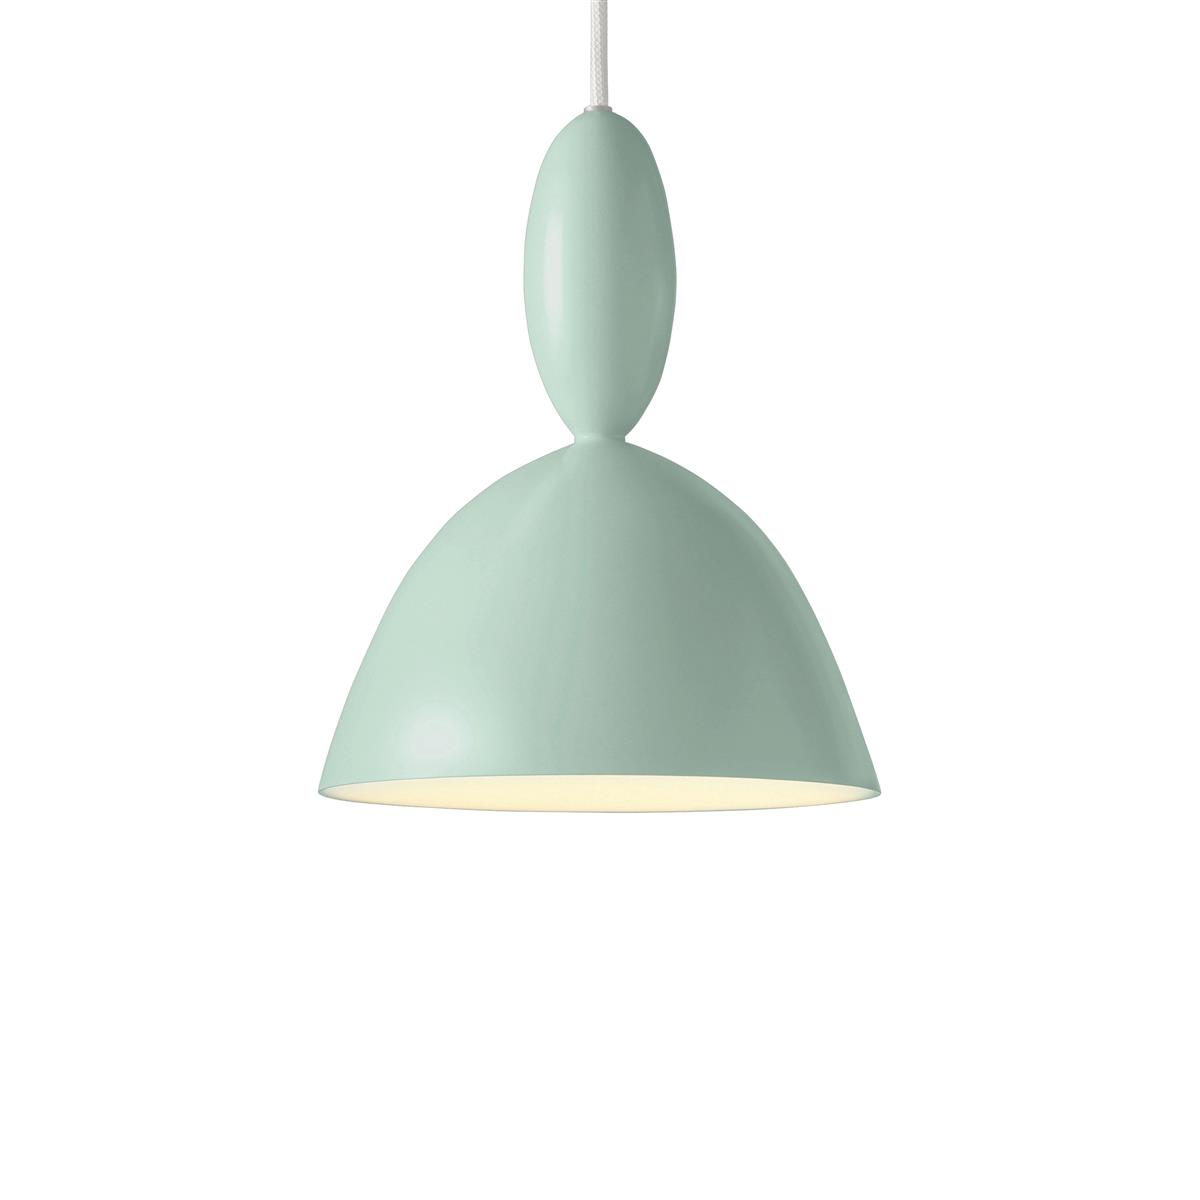 Mhy Pendant Lamp - Light Green